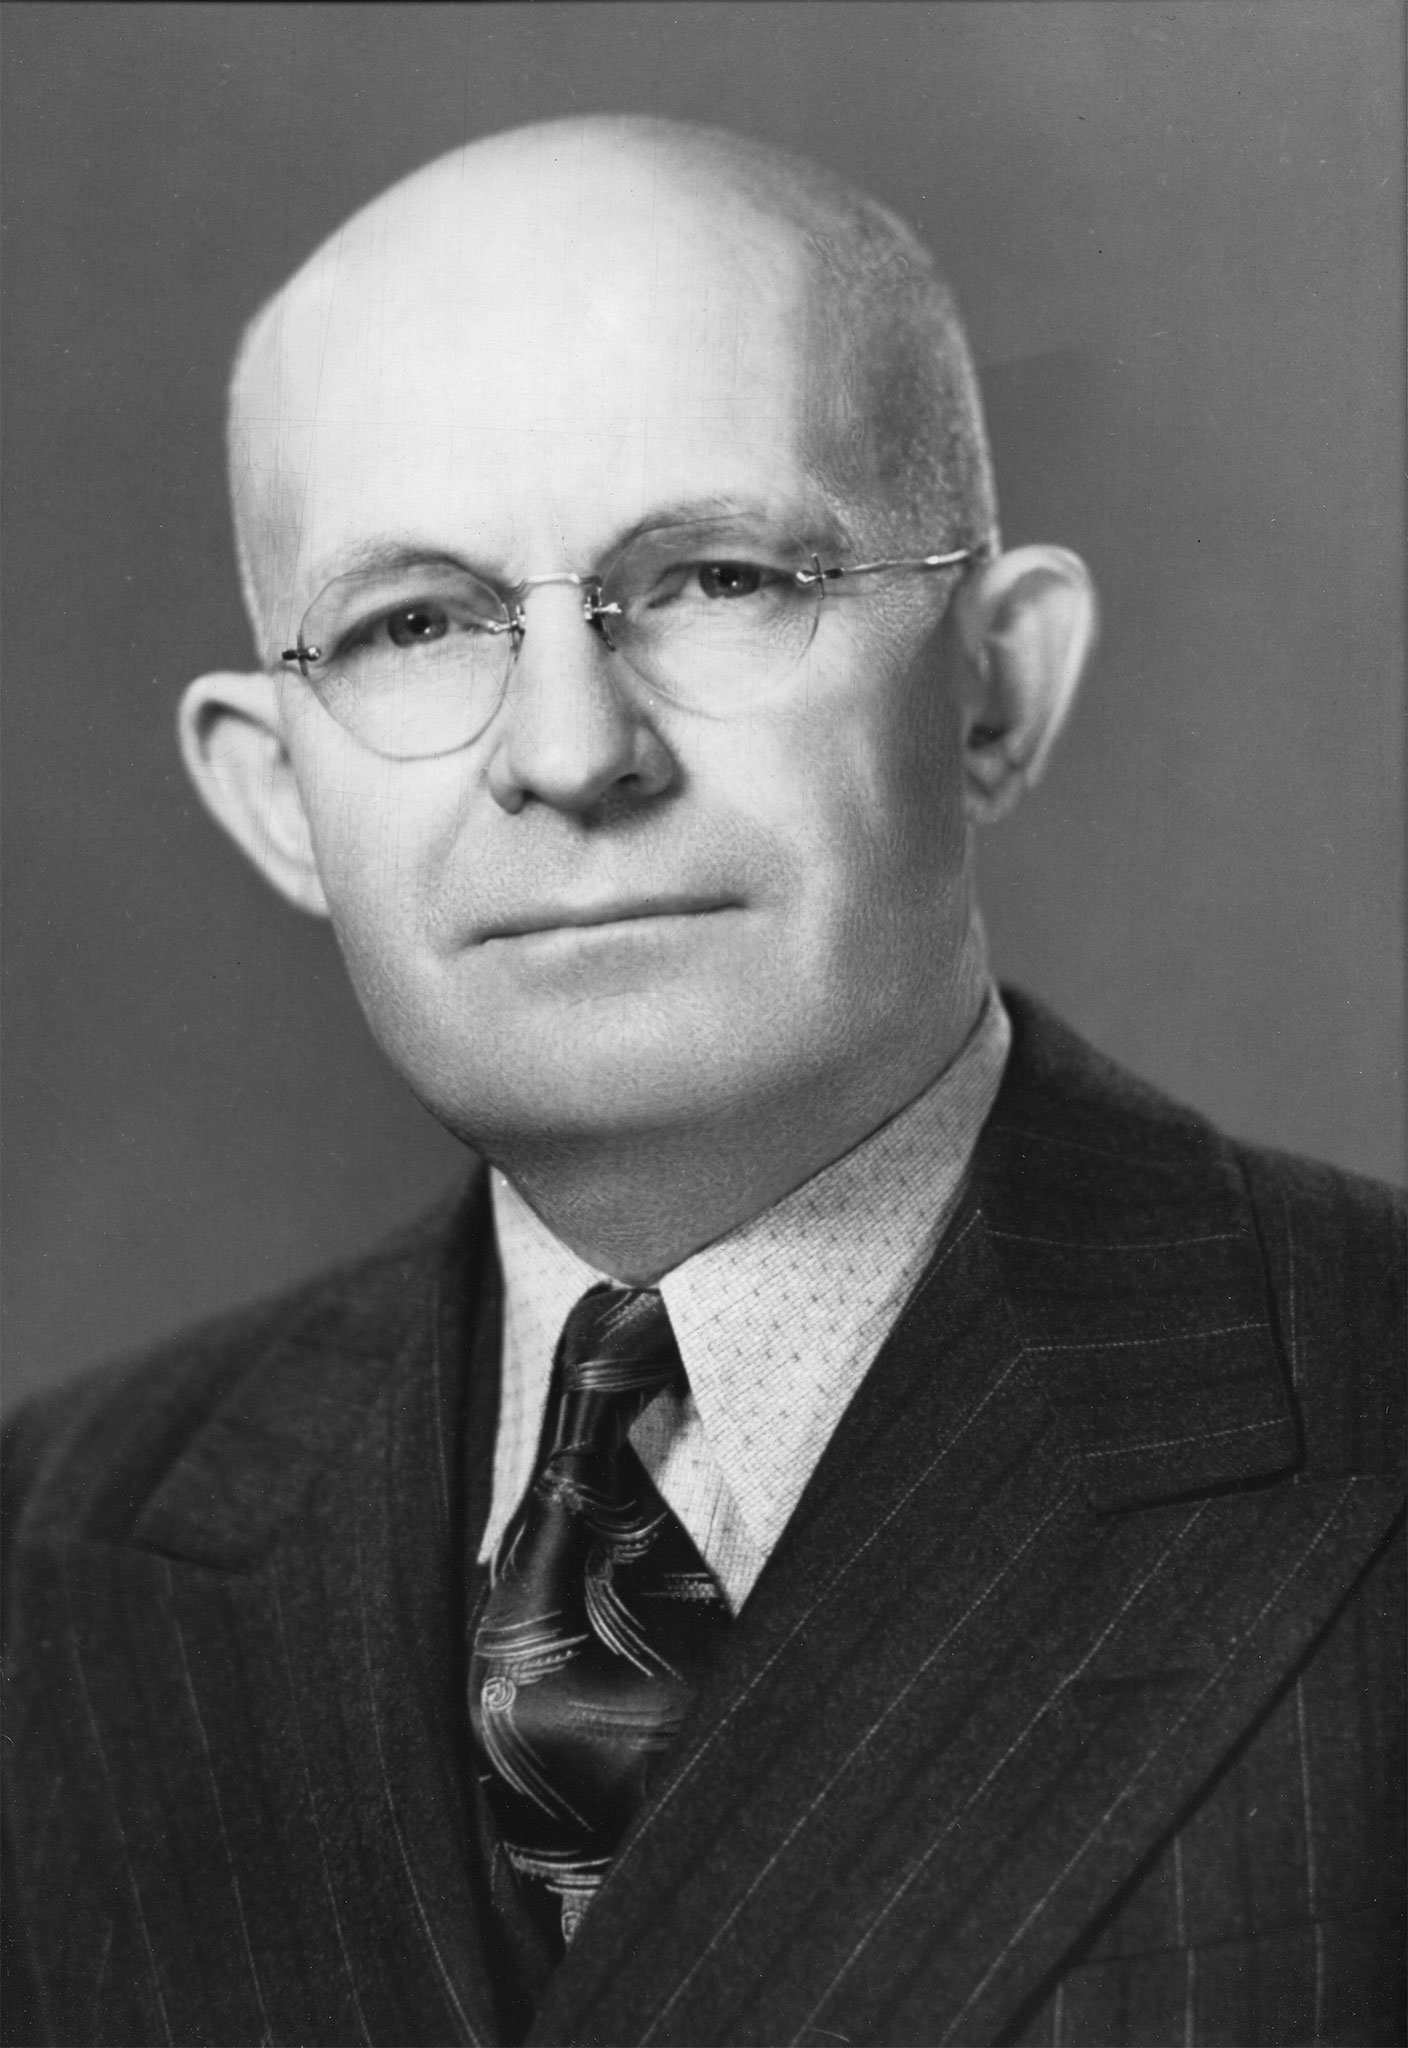 Clarence Roberts, editor of The Oklahoma Farmer-Stockman, was one of several strong proponents for the formation of a Farm Bureau in Oklahoma. His efforts to spark interest in such an organization began as early as 1936 with the formation of the Oklahoma Farmers Emergency Association, which later was dissolved to invite members to join Farm Bureau. In December 1938, Roberts led an unofficial delegation of observers to the American Farm Bureau Federation convention in New Orleans.